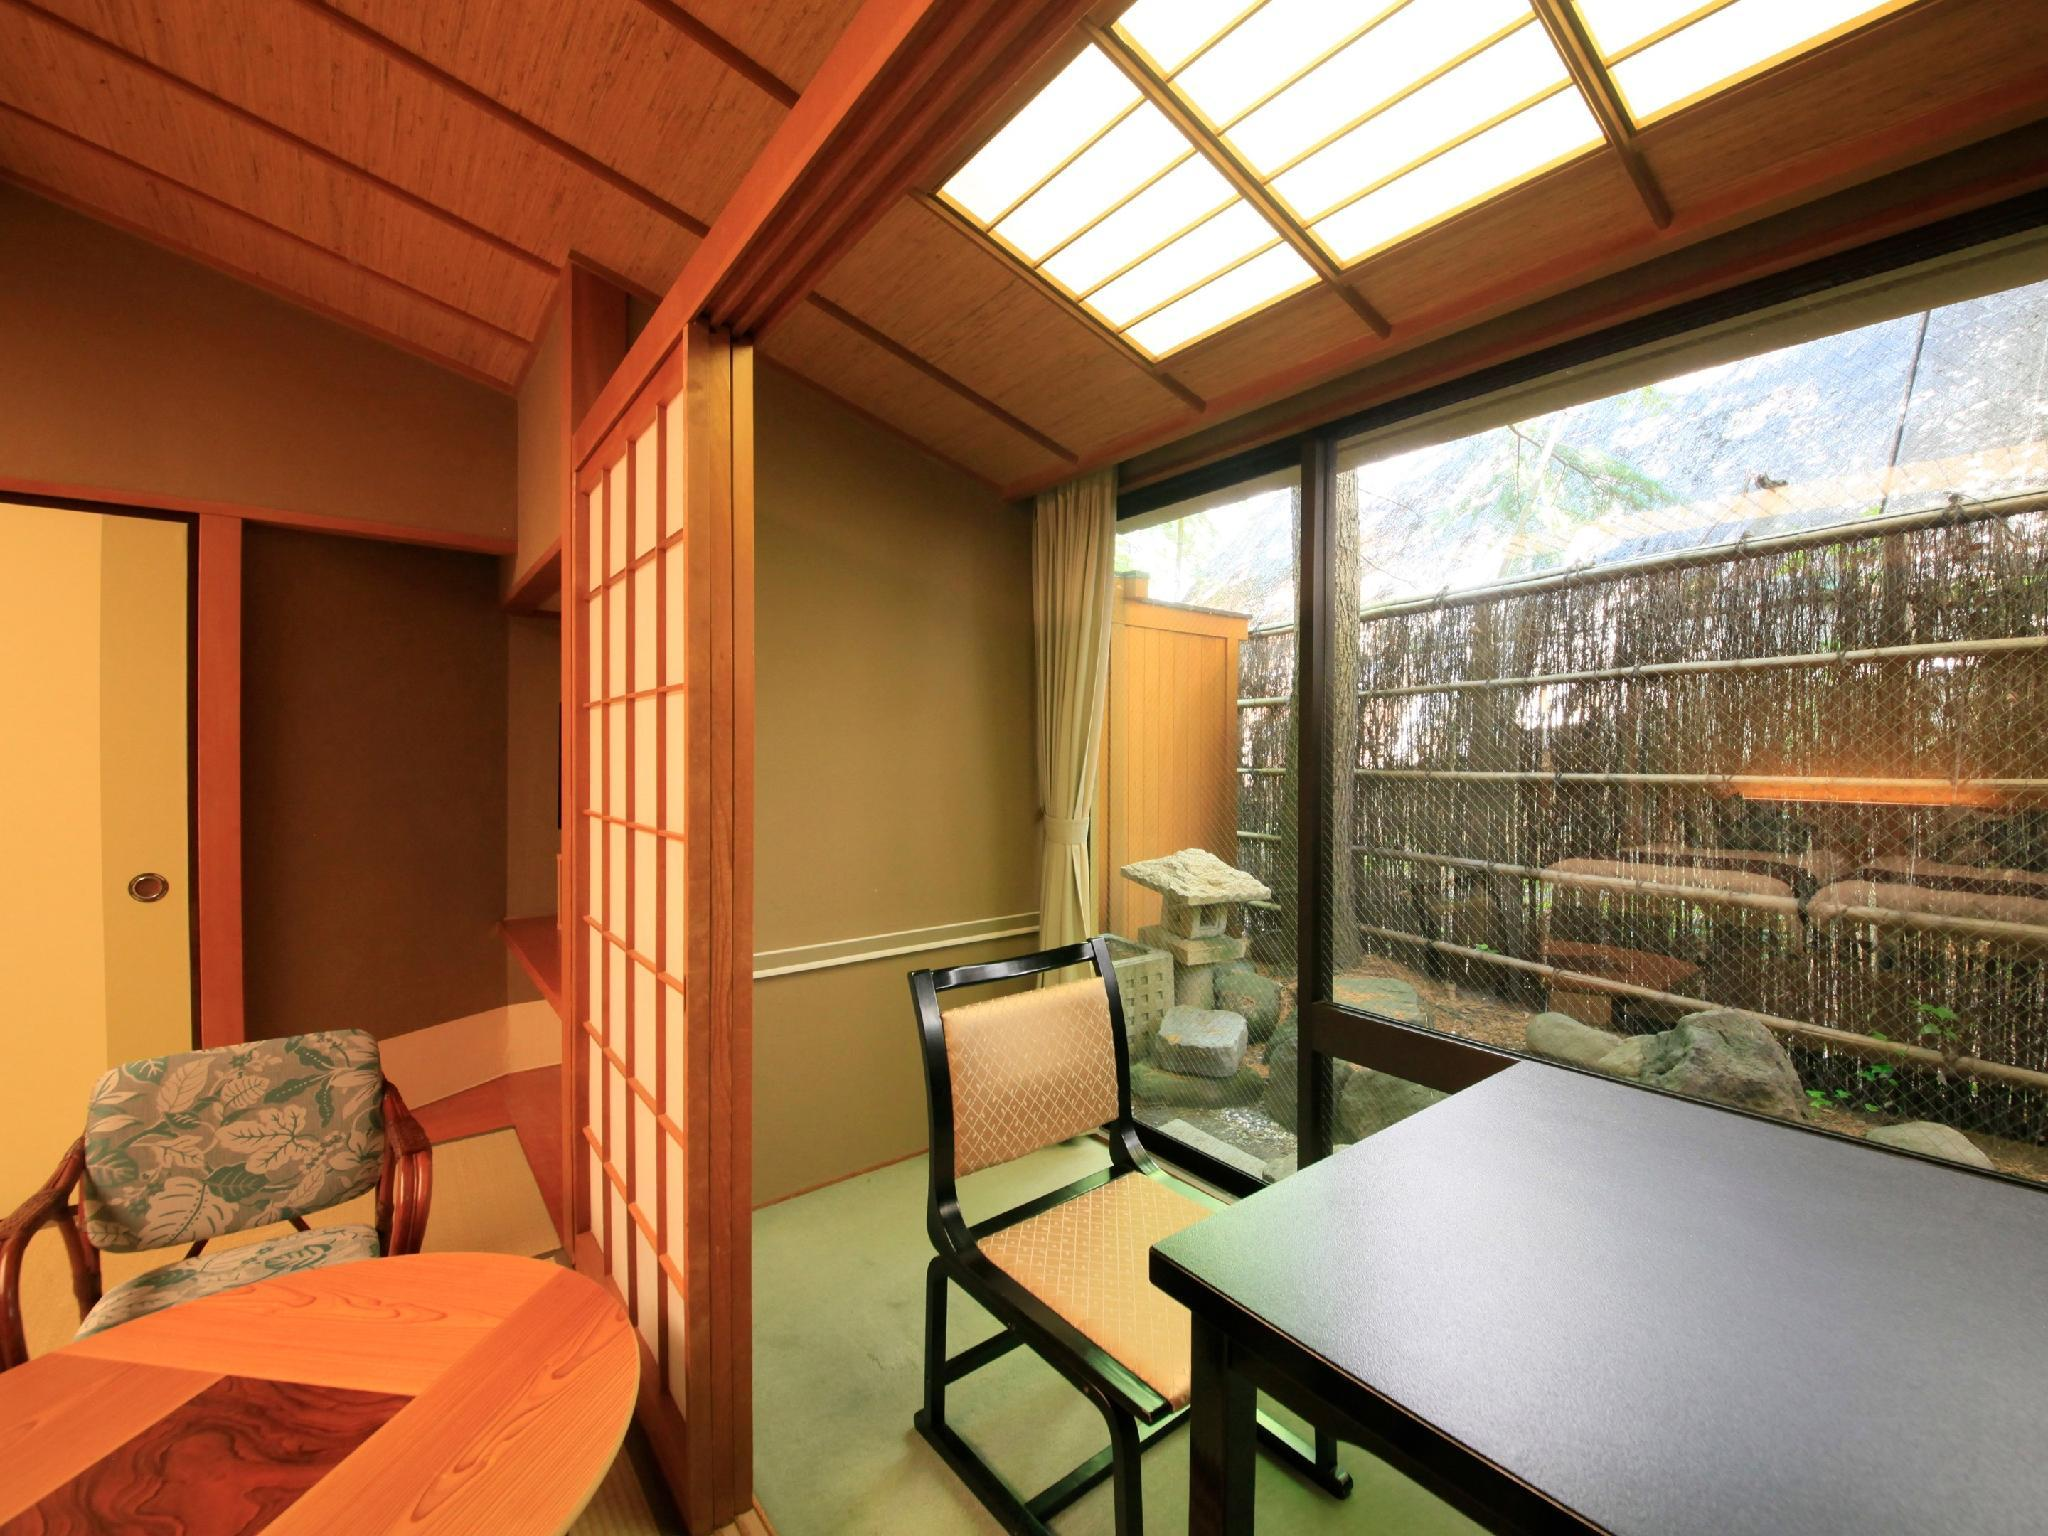 Japanese-style Room with Beds